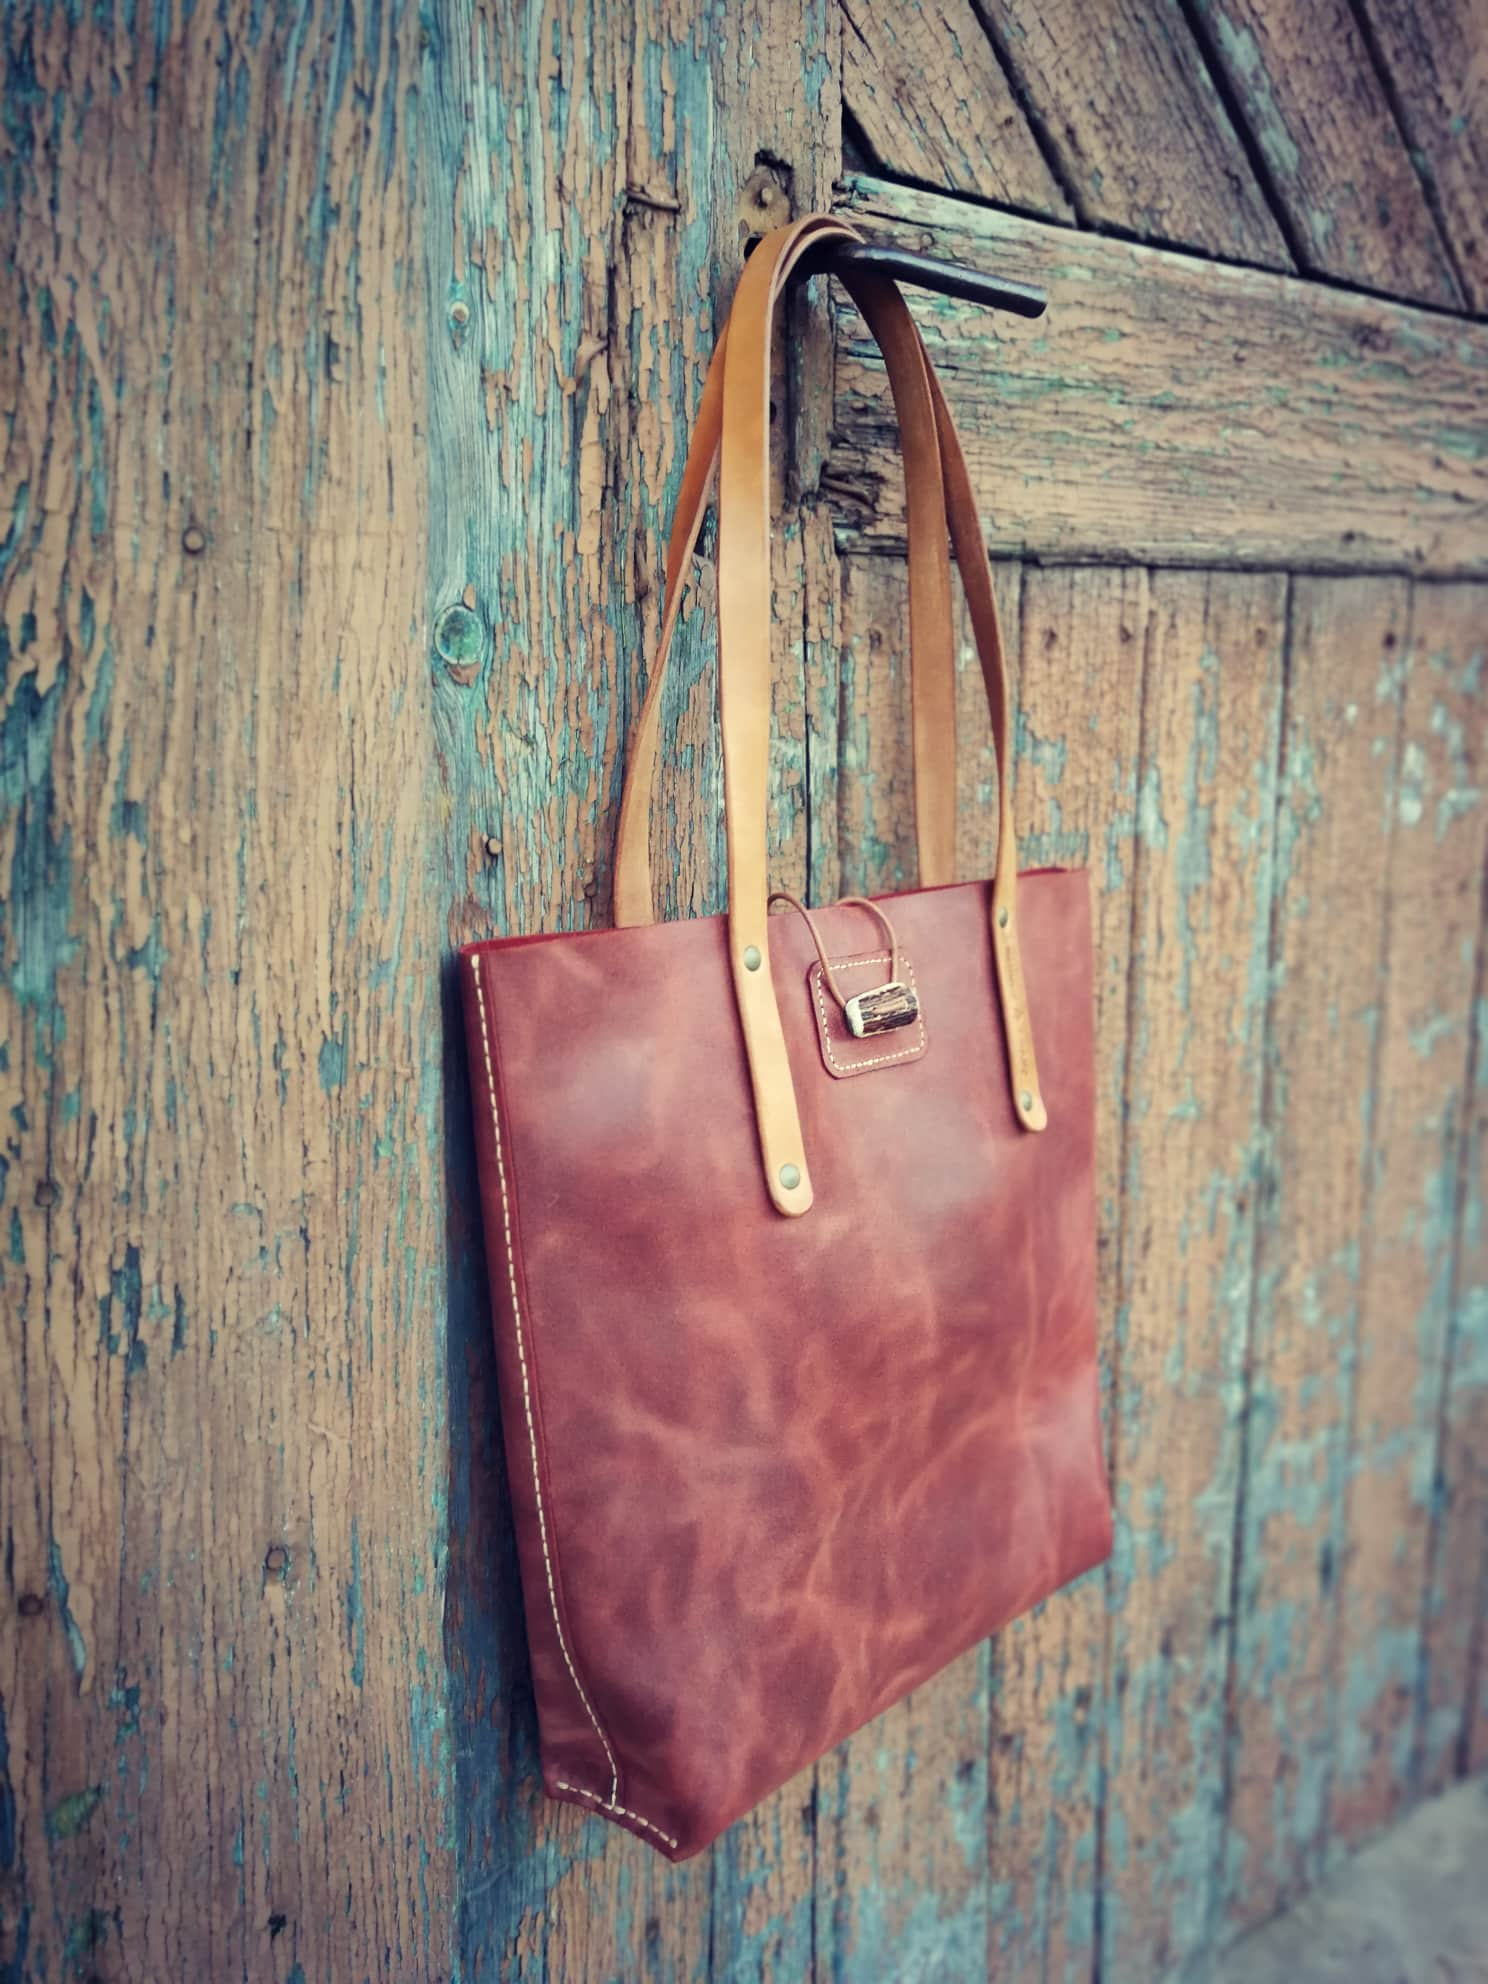 Handbag Tote, leather